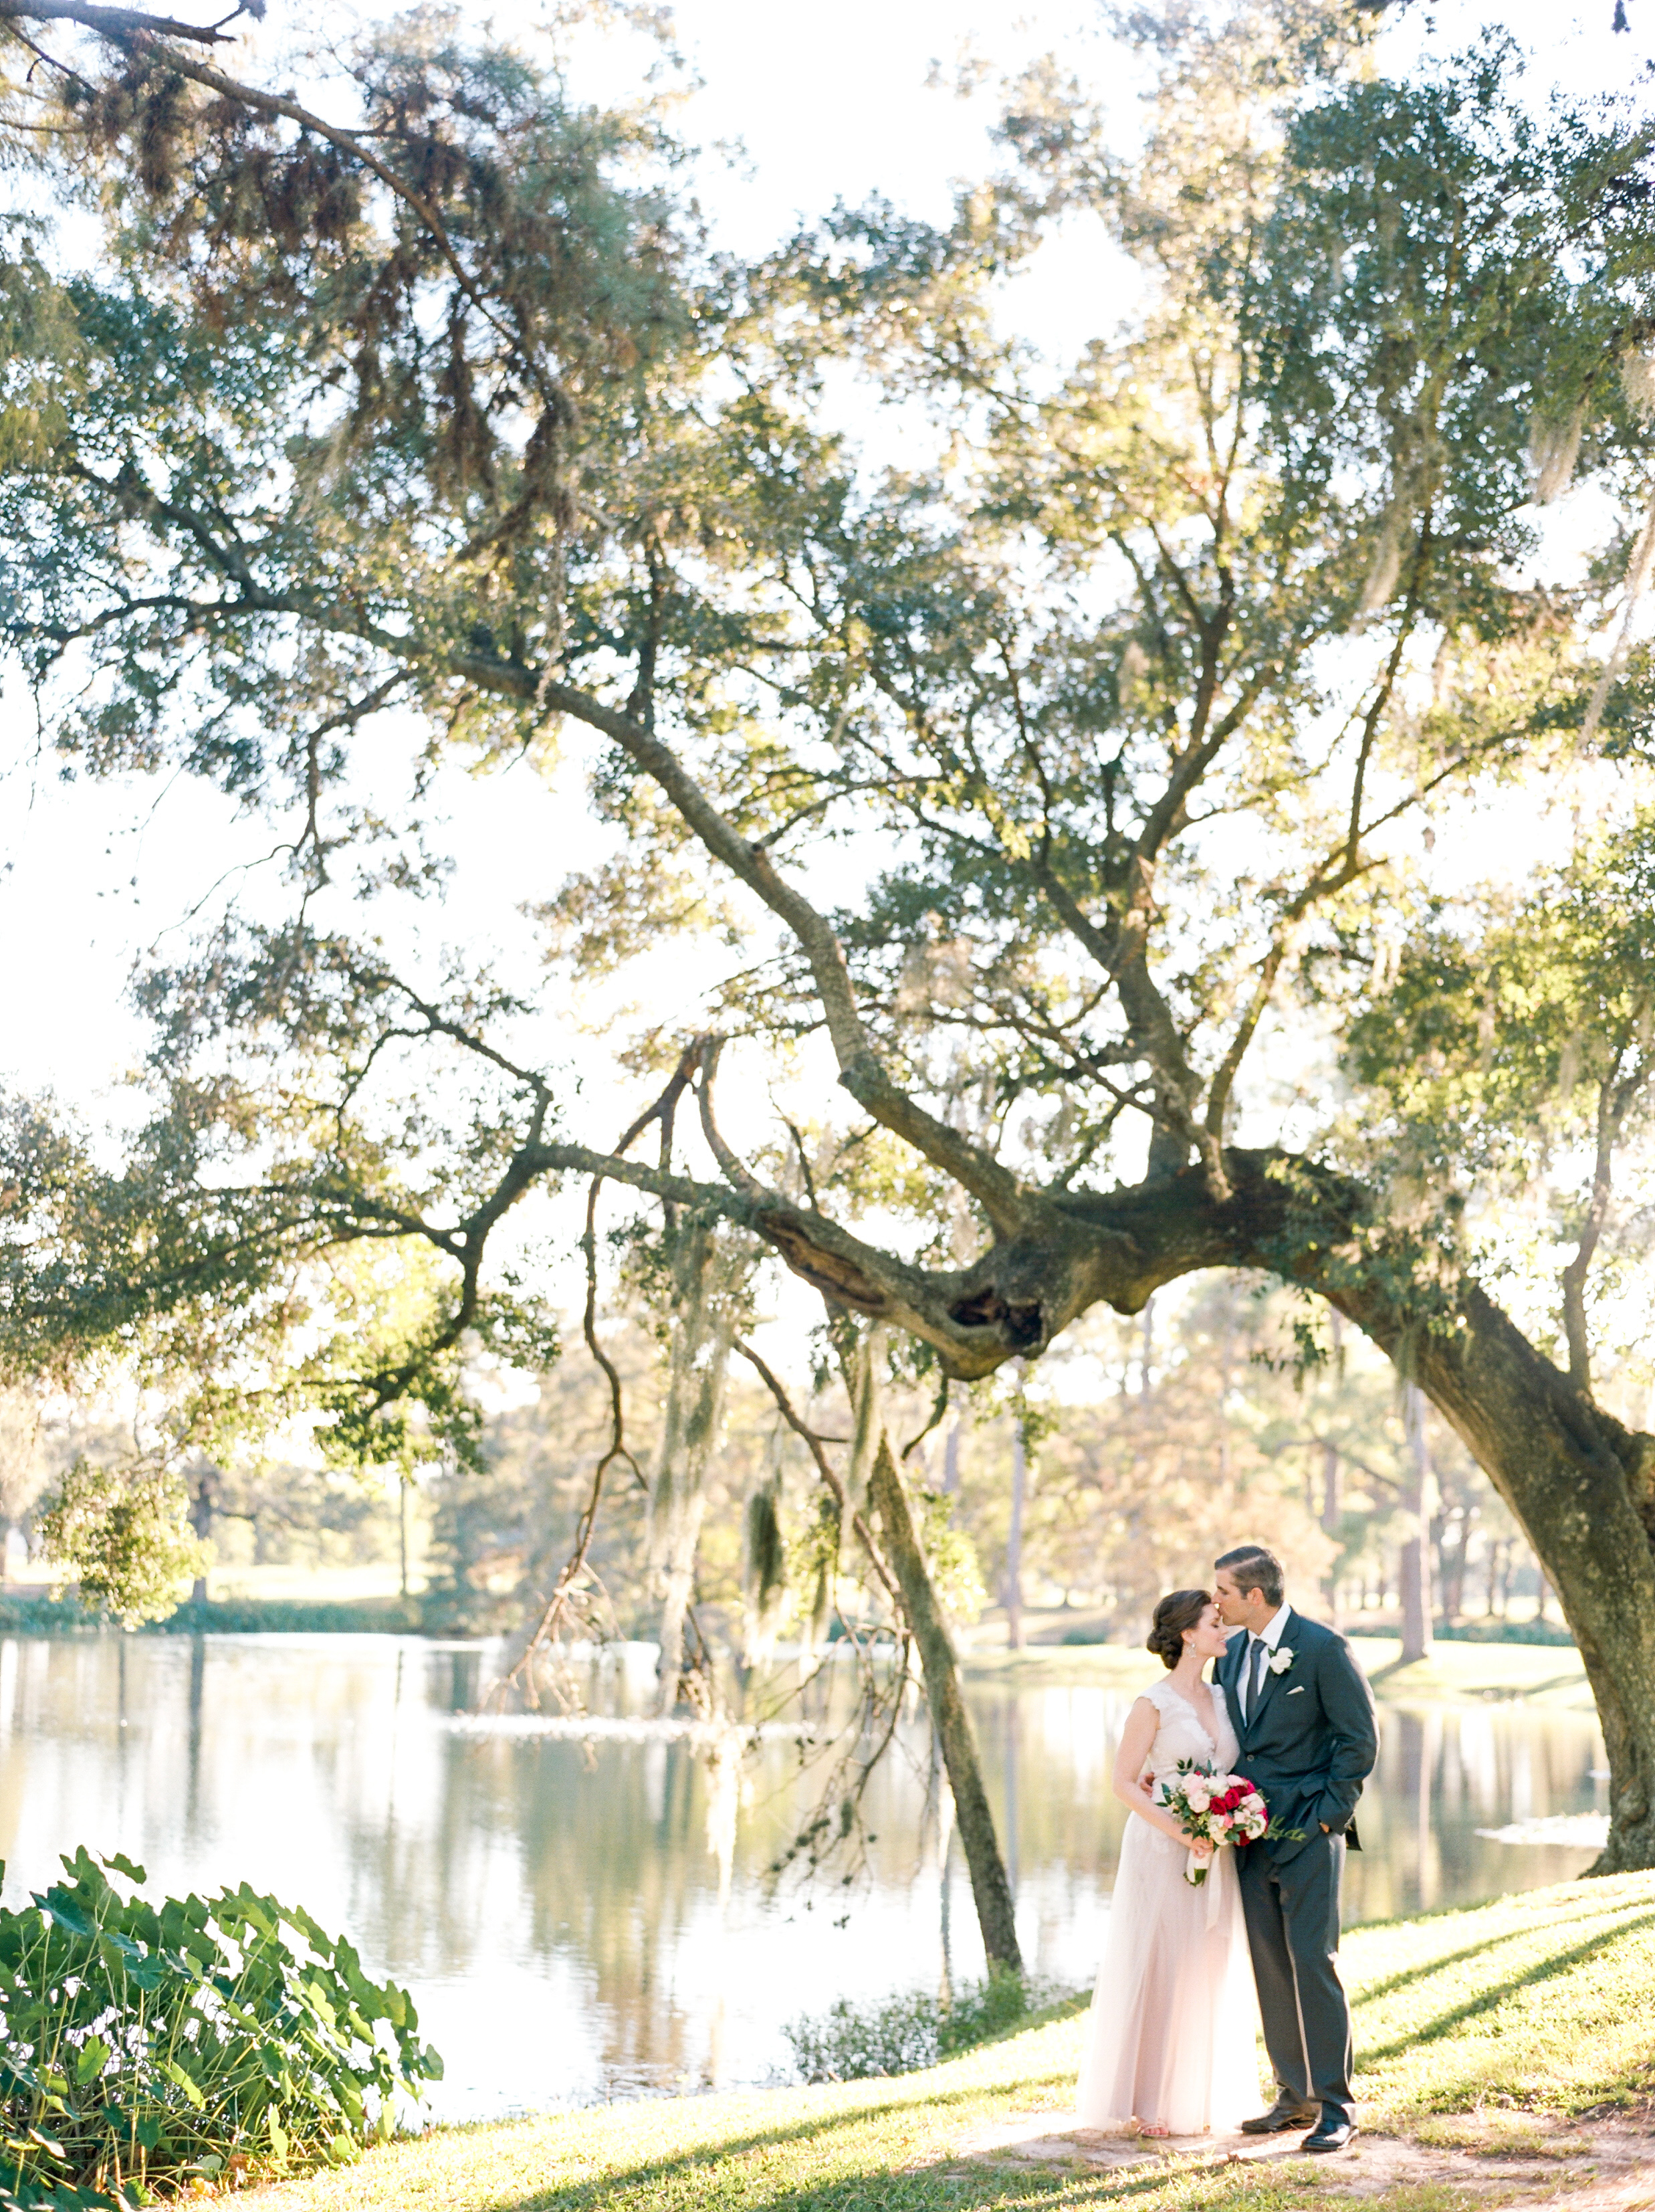 Houston-Wedding-Photographer-Lakeside-Country-Club-First-Look-Bride-Groom-Formals-Film-Fine-Art-Photography-1.jpg